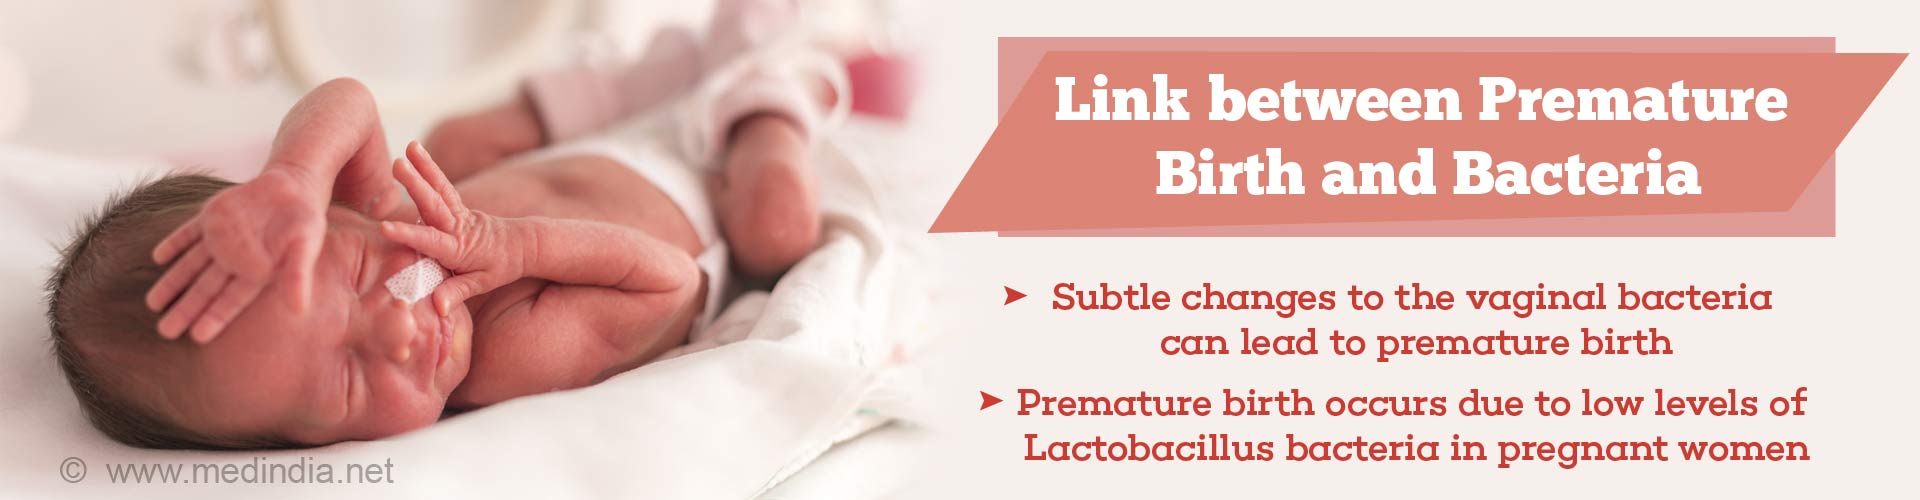 link between premature birth and bacteria - subtle changes to the vaginal bacteria can lead to premature birth - premature birth occurs due to low levels of lactobacillus bacteria in pregnant women